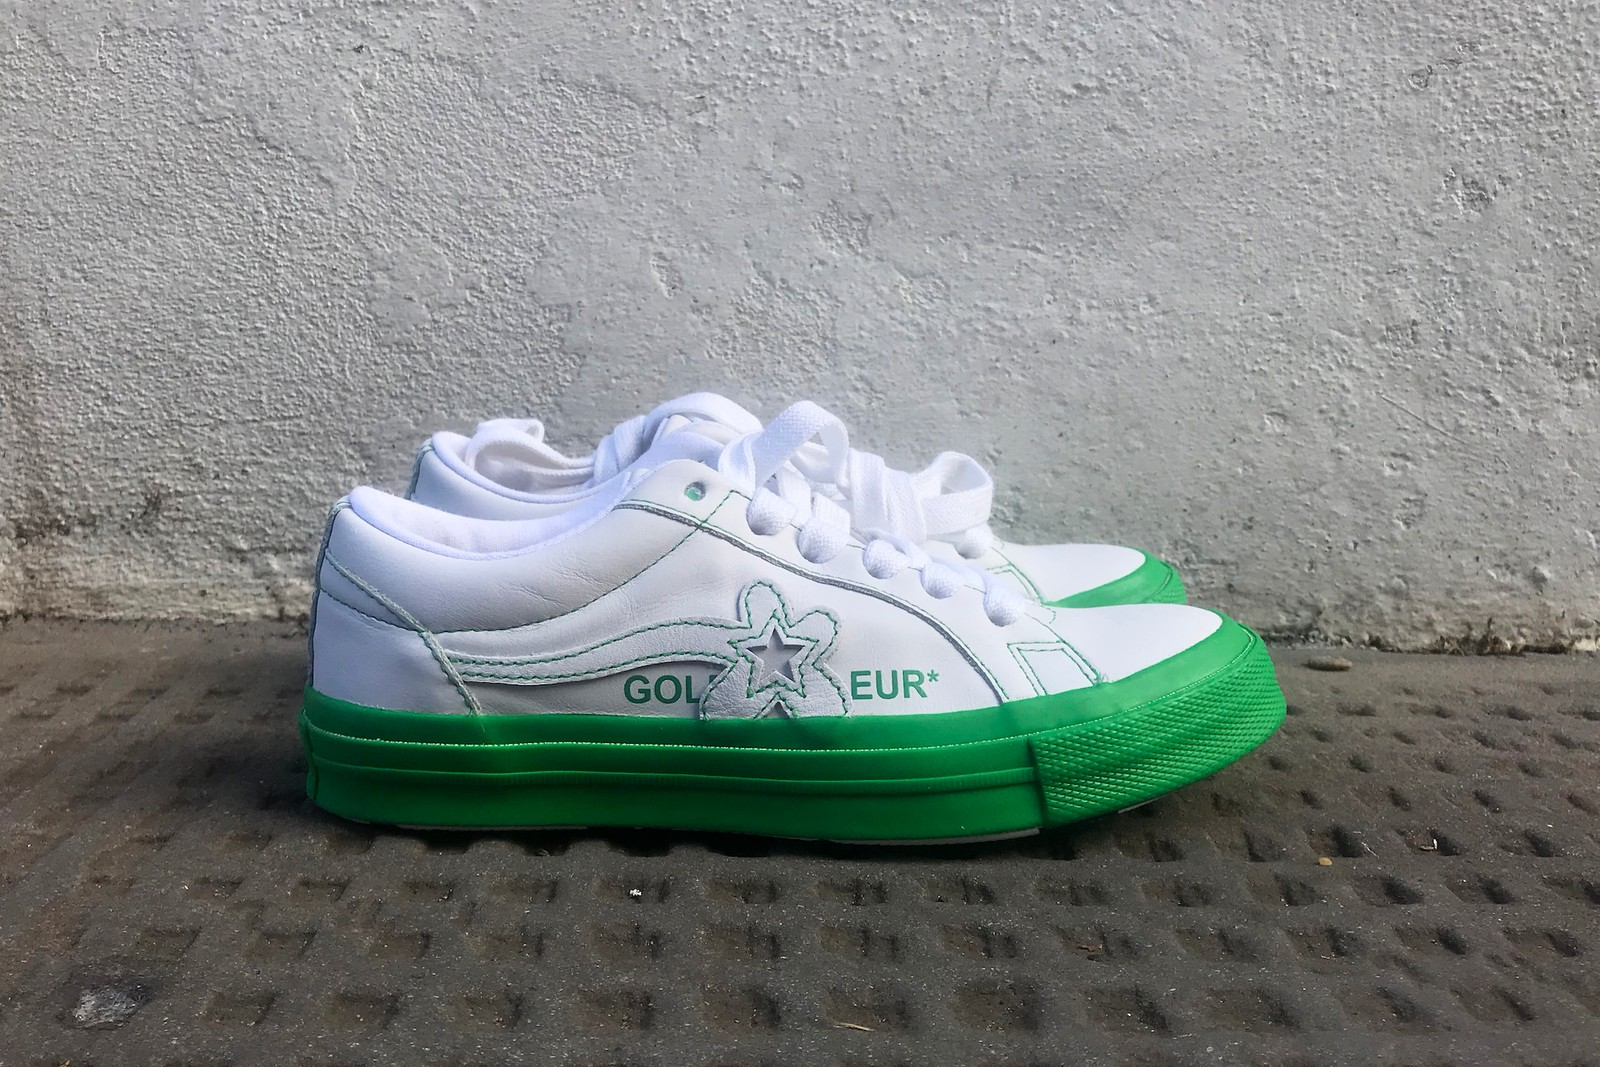 Converse GOLF le FLEUR* One Star Sneaker Review